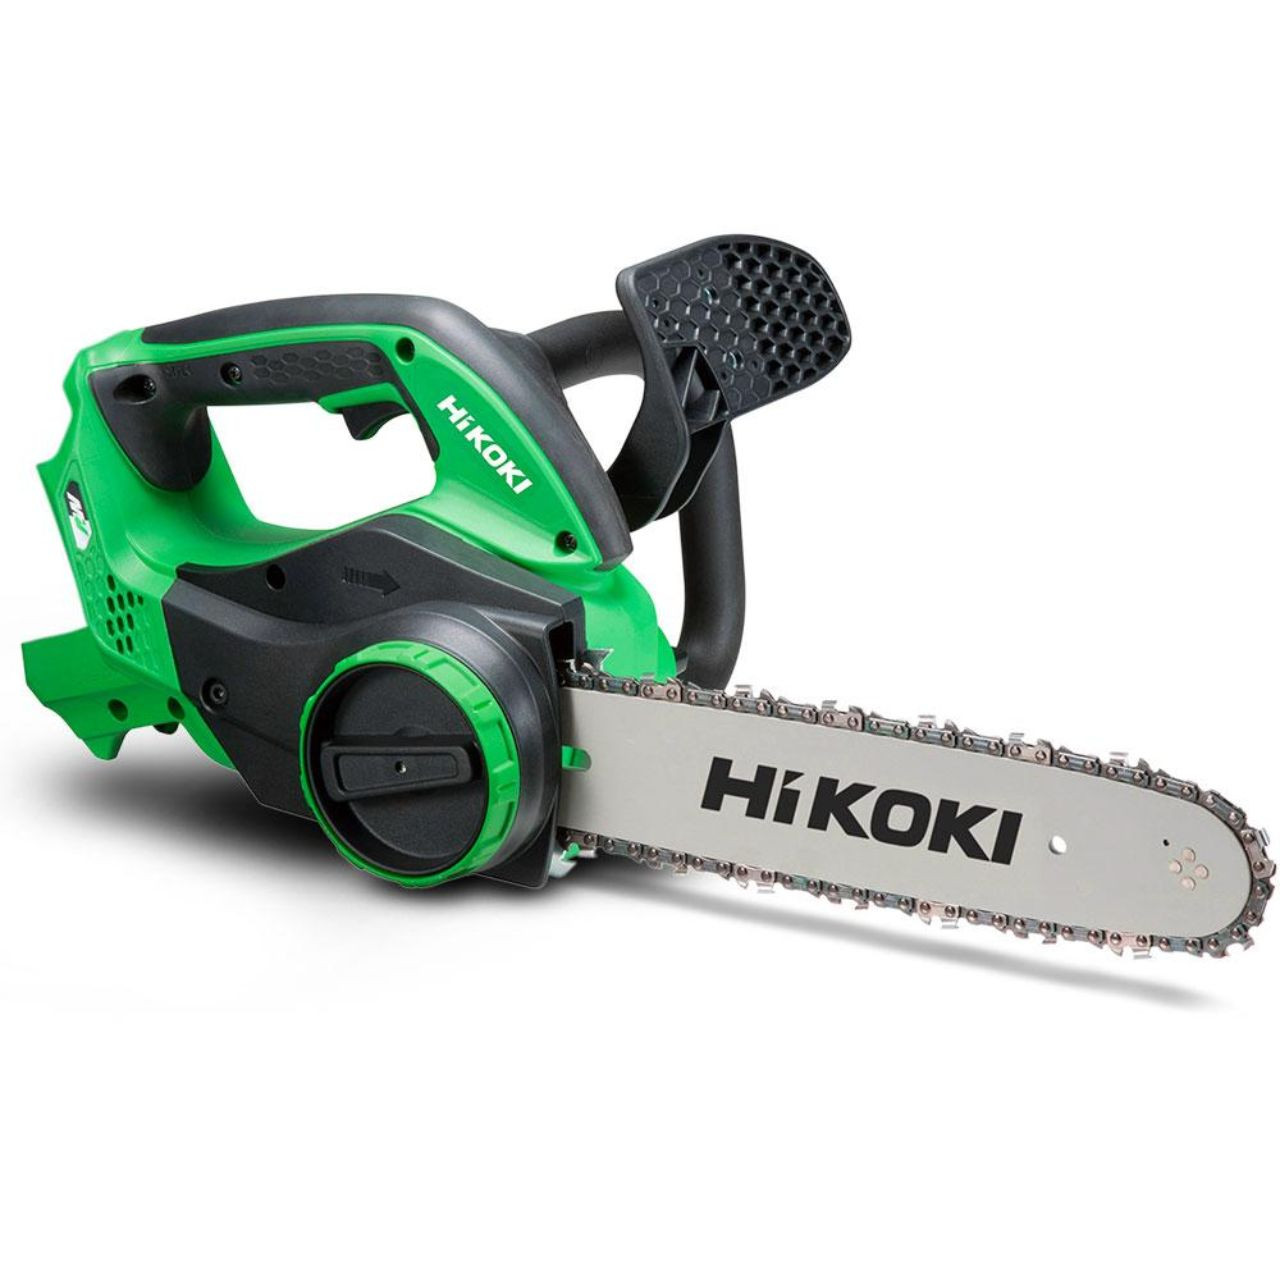 Hikoki 36V 300mm Chainsaw Skin Only